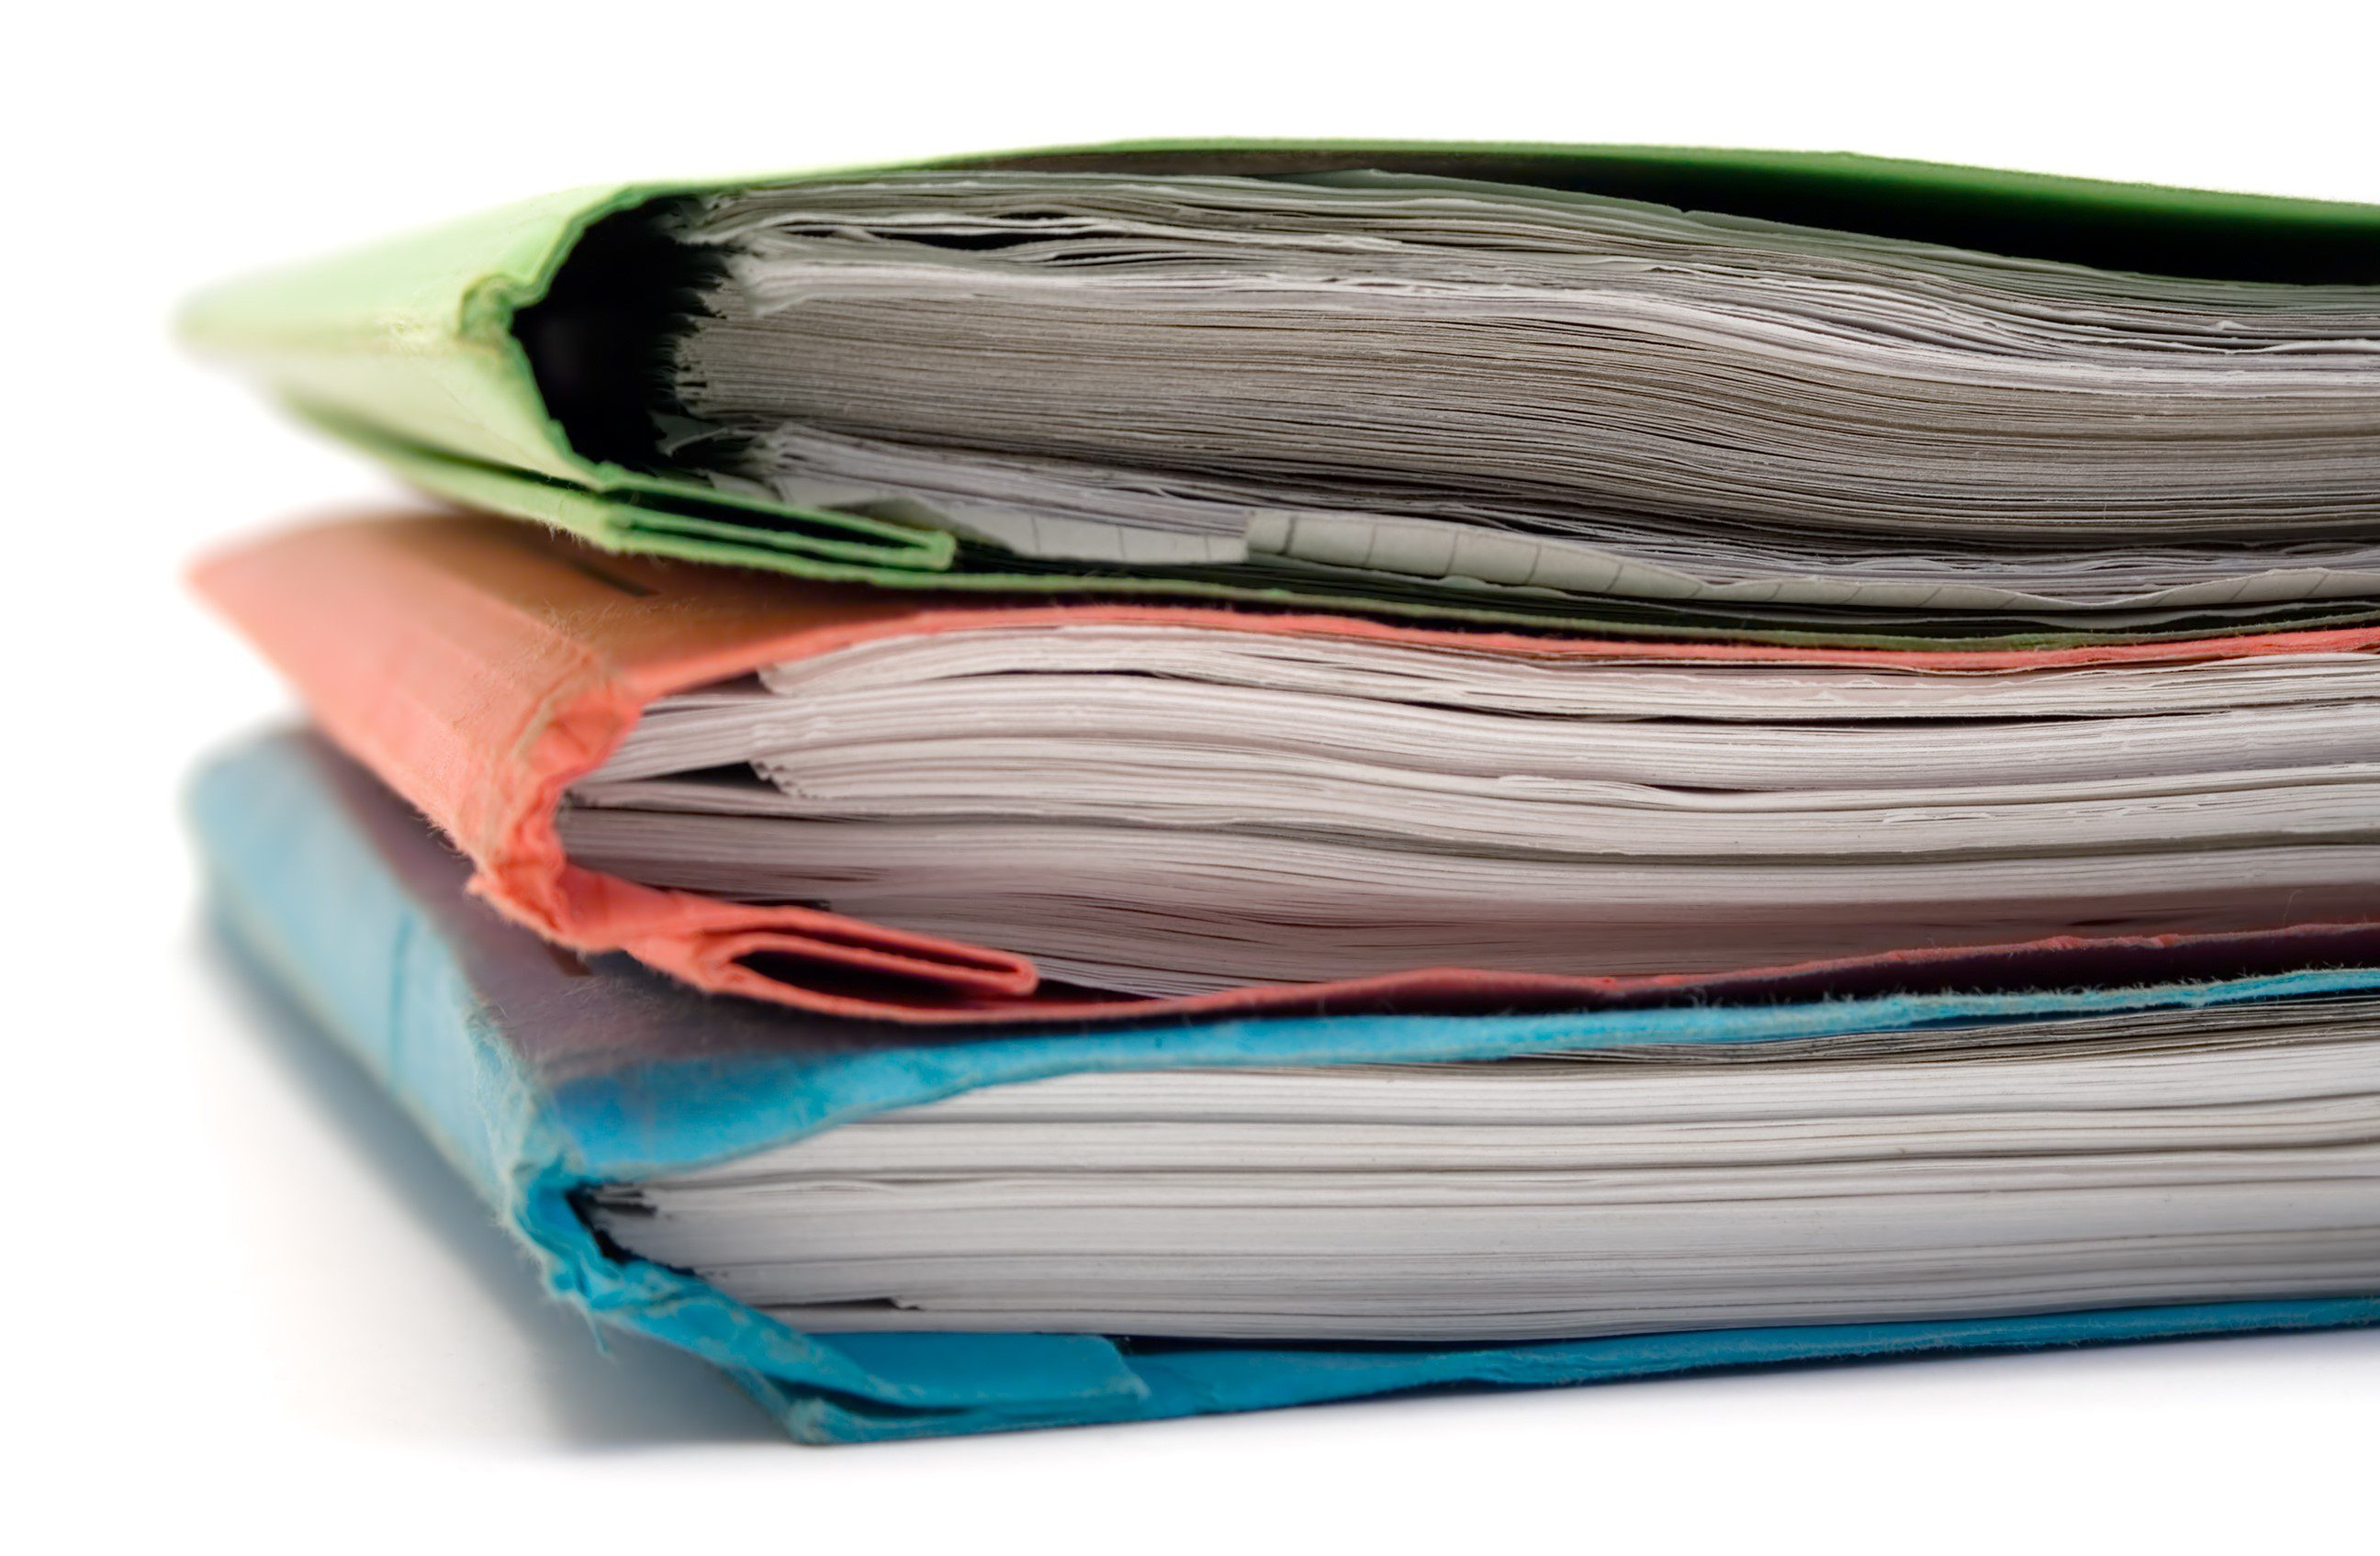 FERPA and HIPAA: When Can You Share Student Education and Health Records?